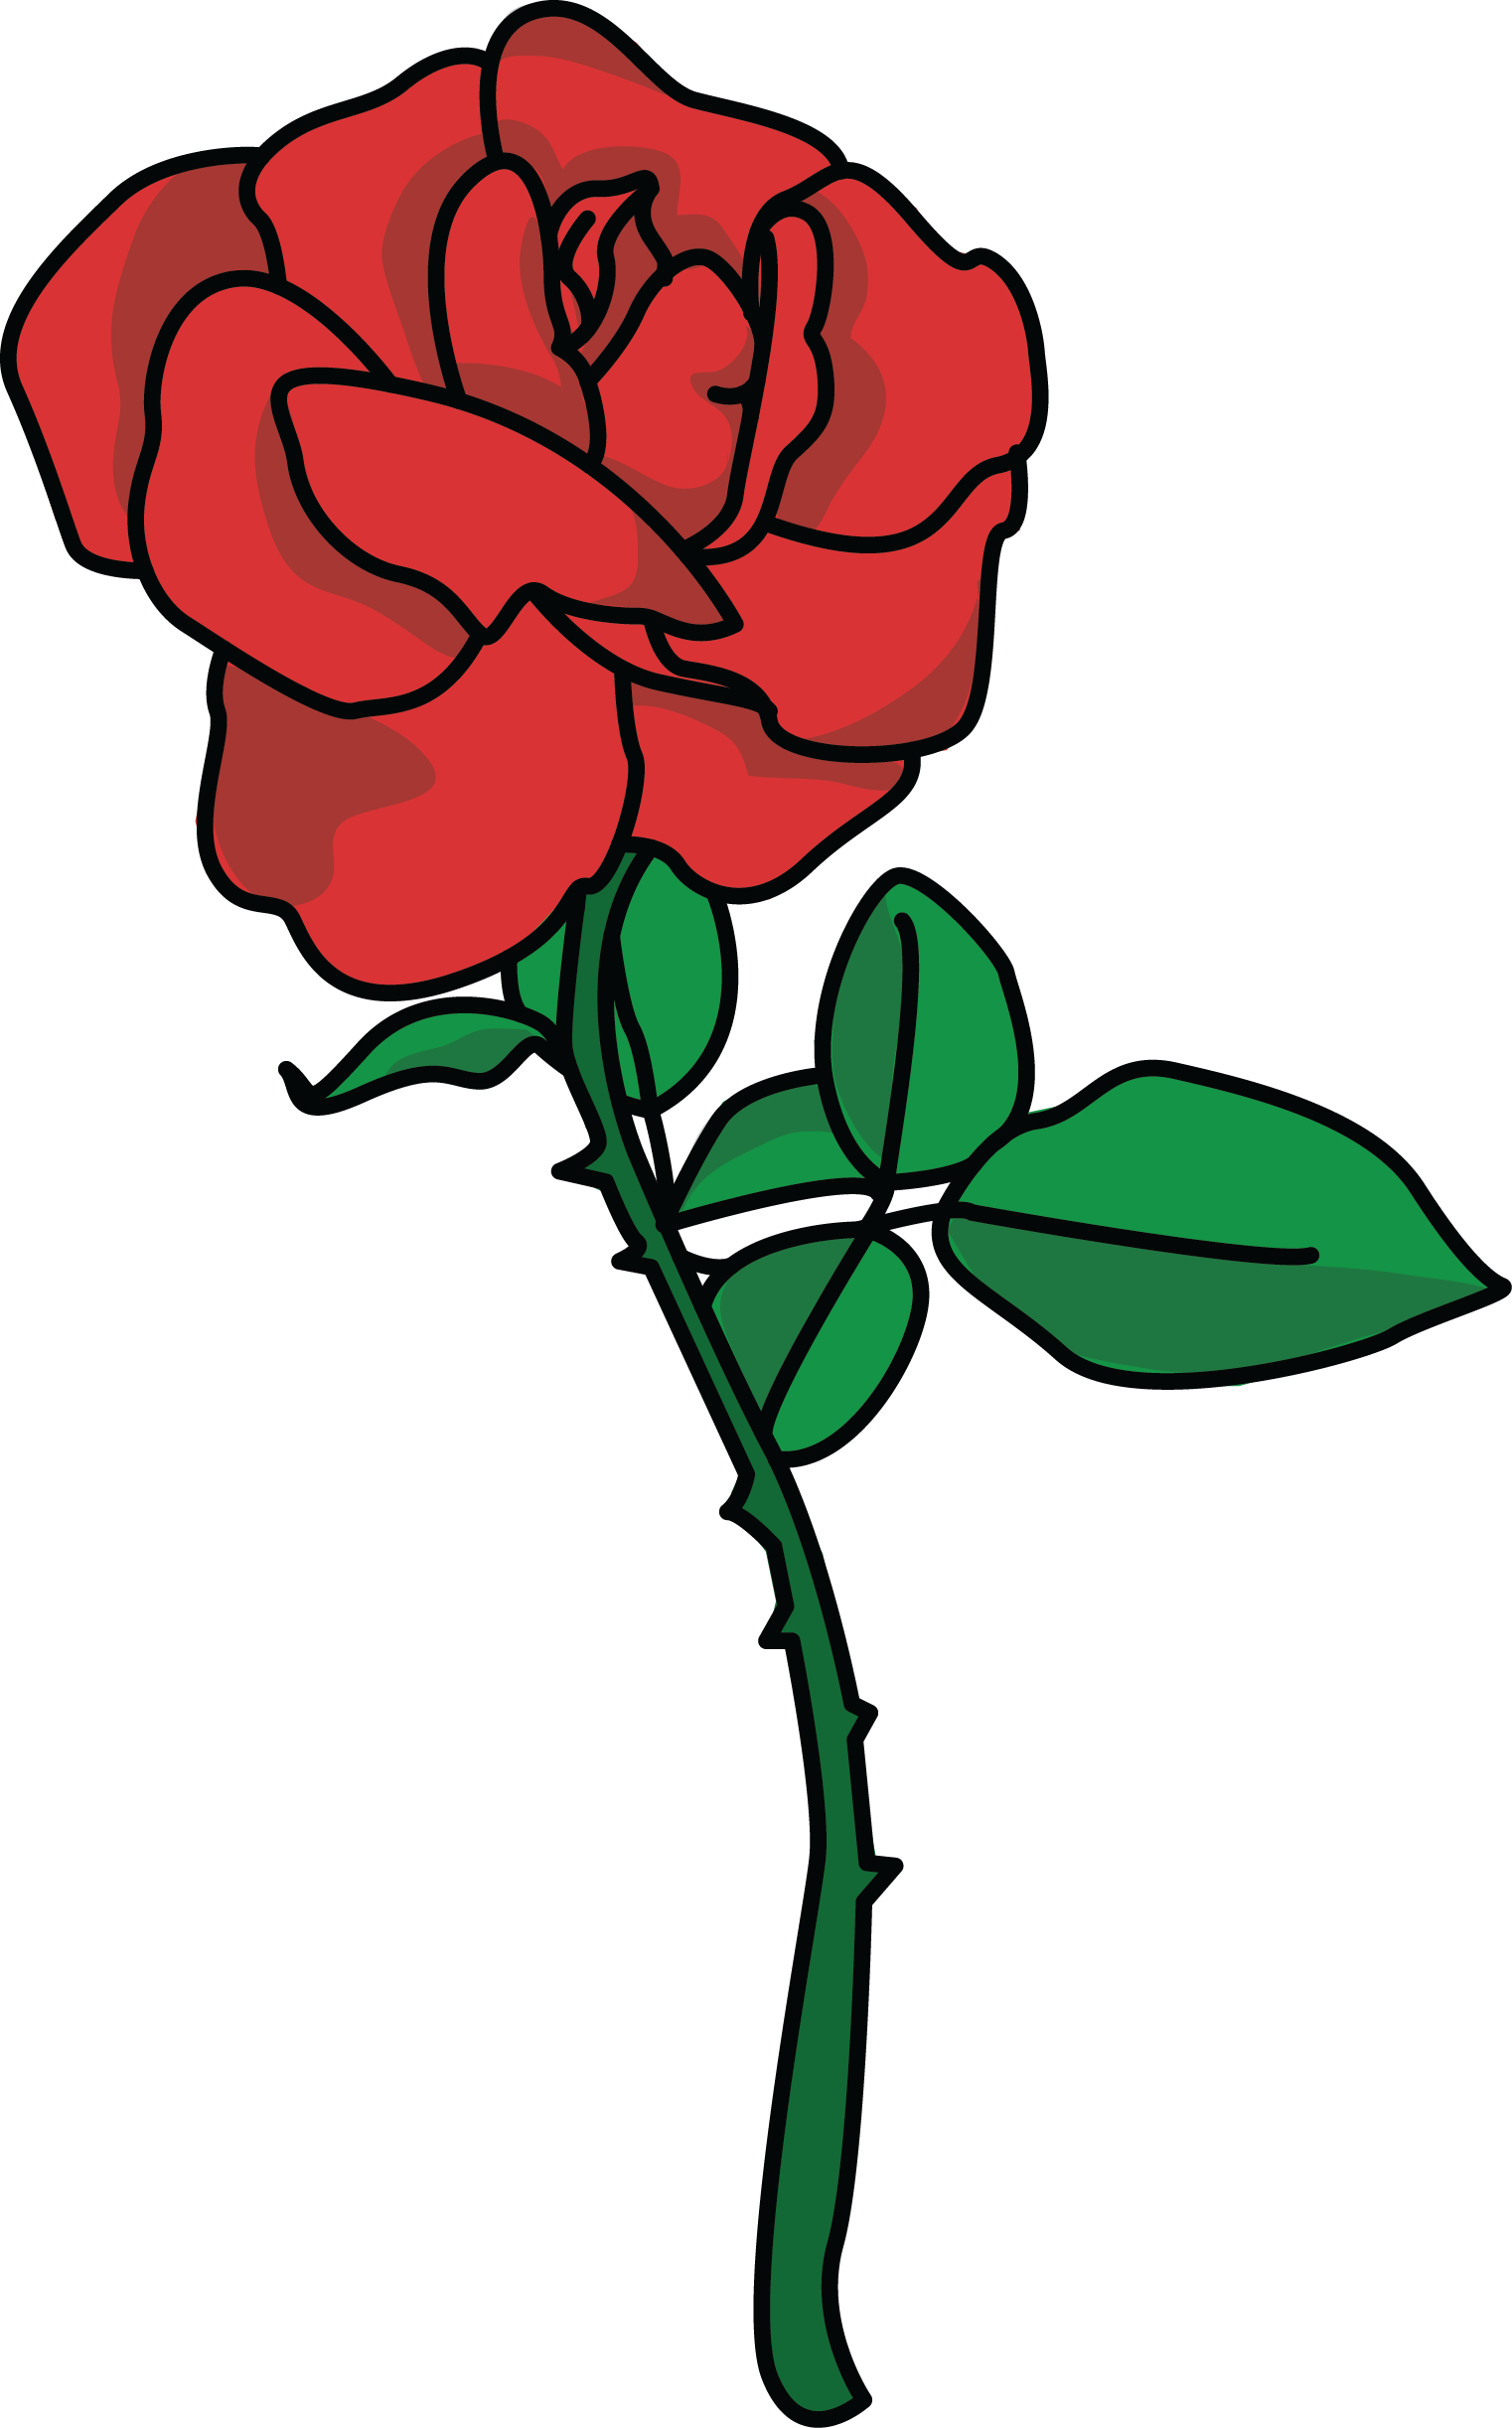 2 roses clipart picture transparent download Extraordinary Rose Clip Art Creative Inspiration Image Of Red 2 ... picture transparent download